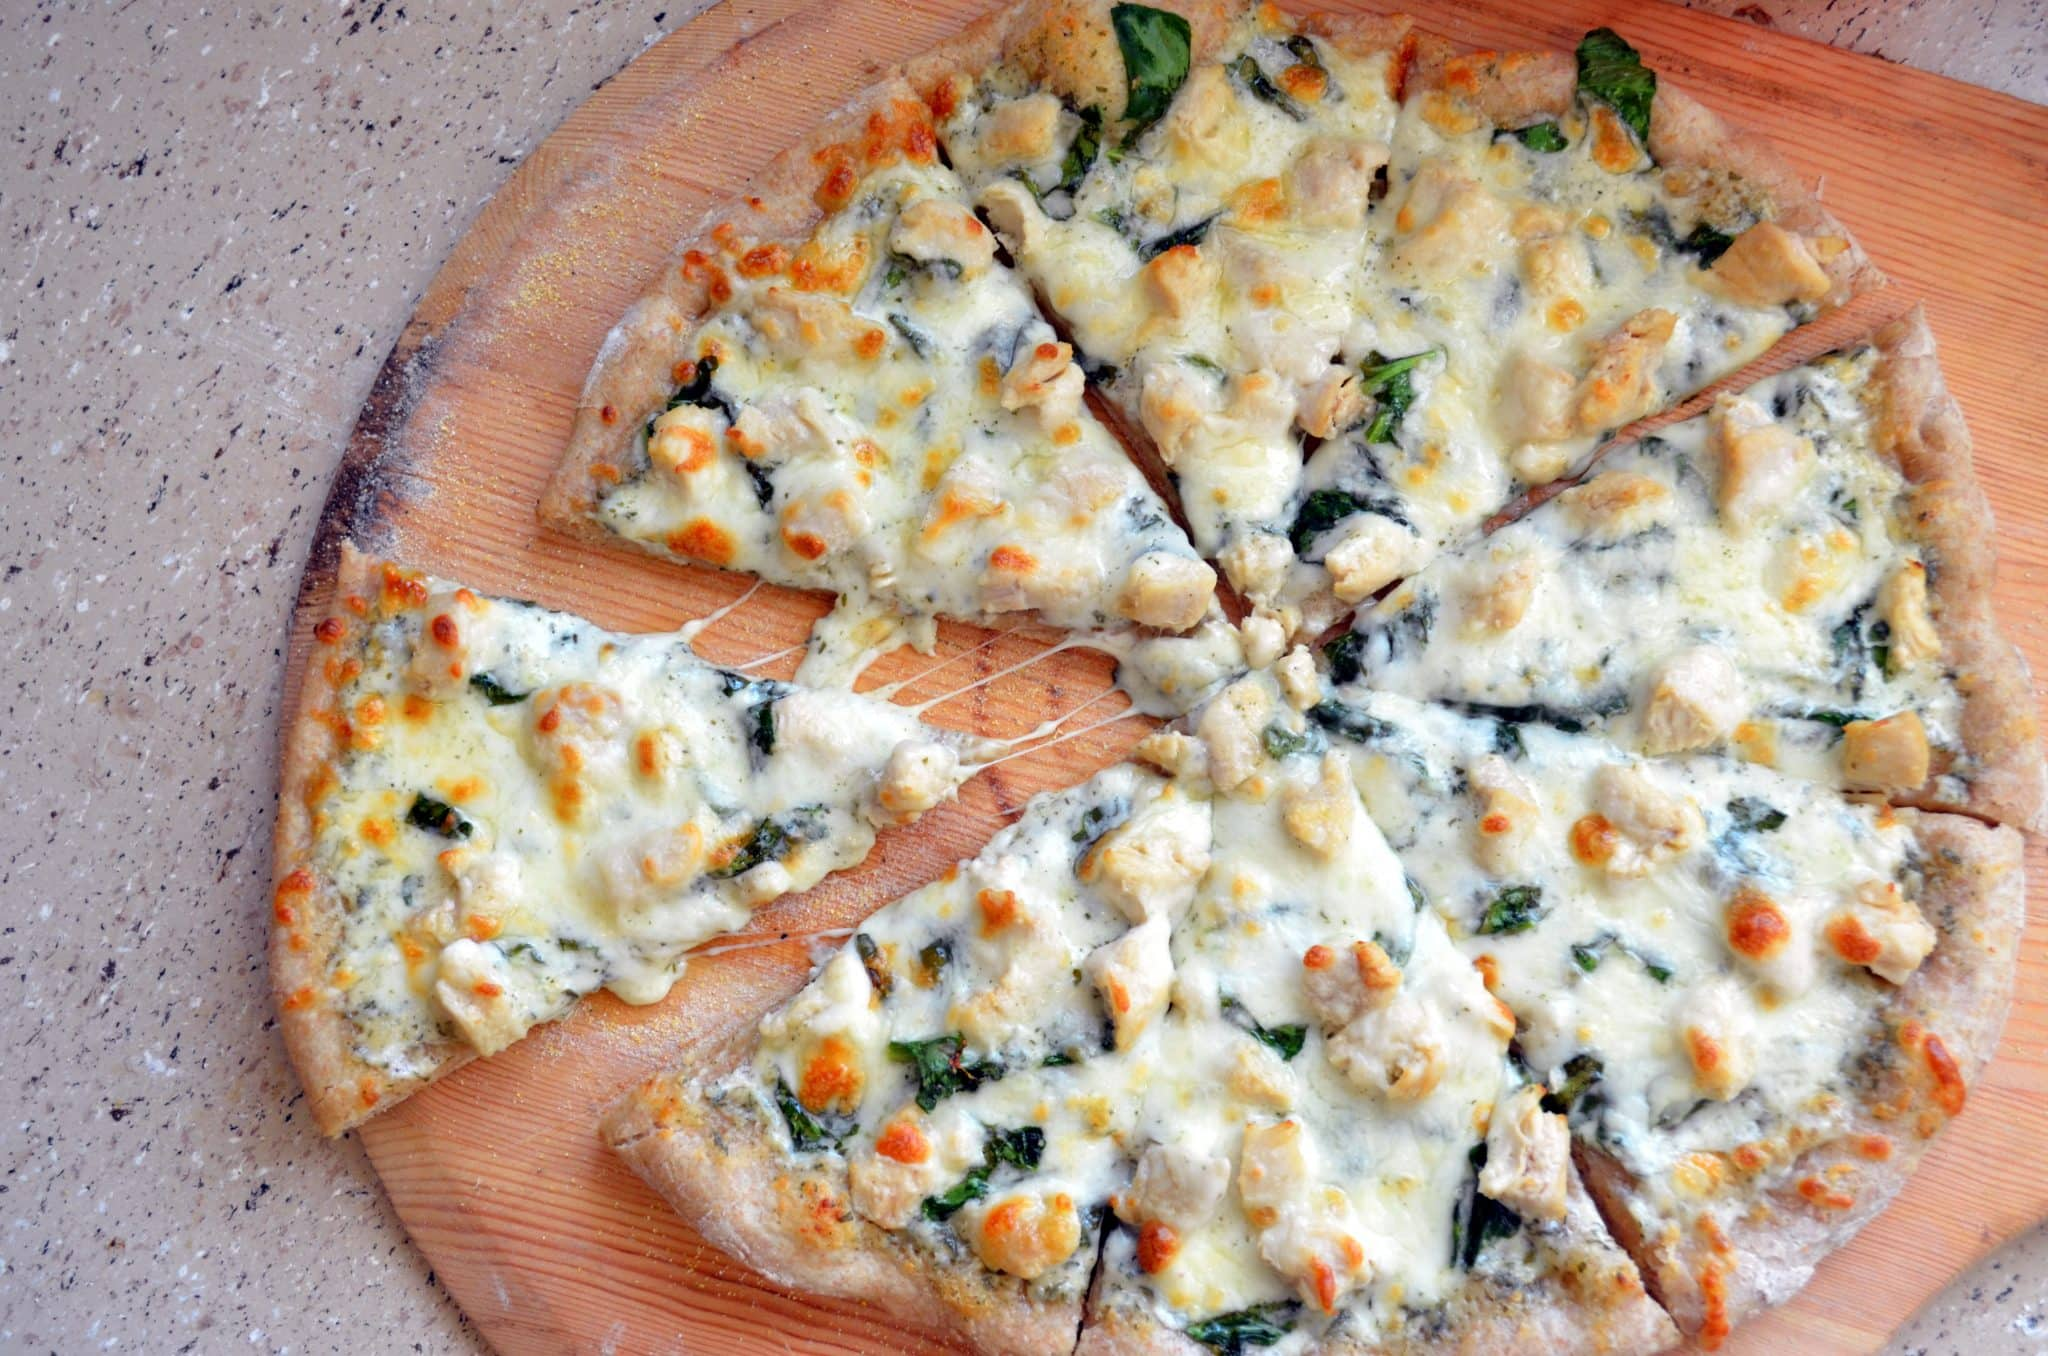 Crusts and toppings so you can make your own at home. Bye-bye, delivery guy! Spinach Alfredo Pizza, Blue Cheese, Walnut, and Pear Pizza, Campfire Pepperoni Pizza, Barbeque Chicken Grilled Pizza, Mediterranean Pesto Pizza.